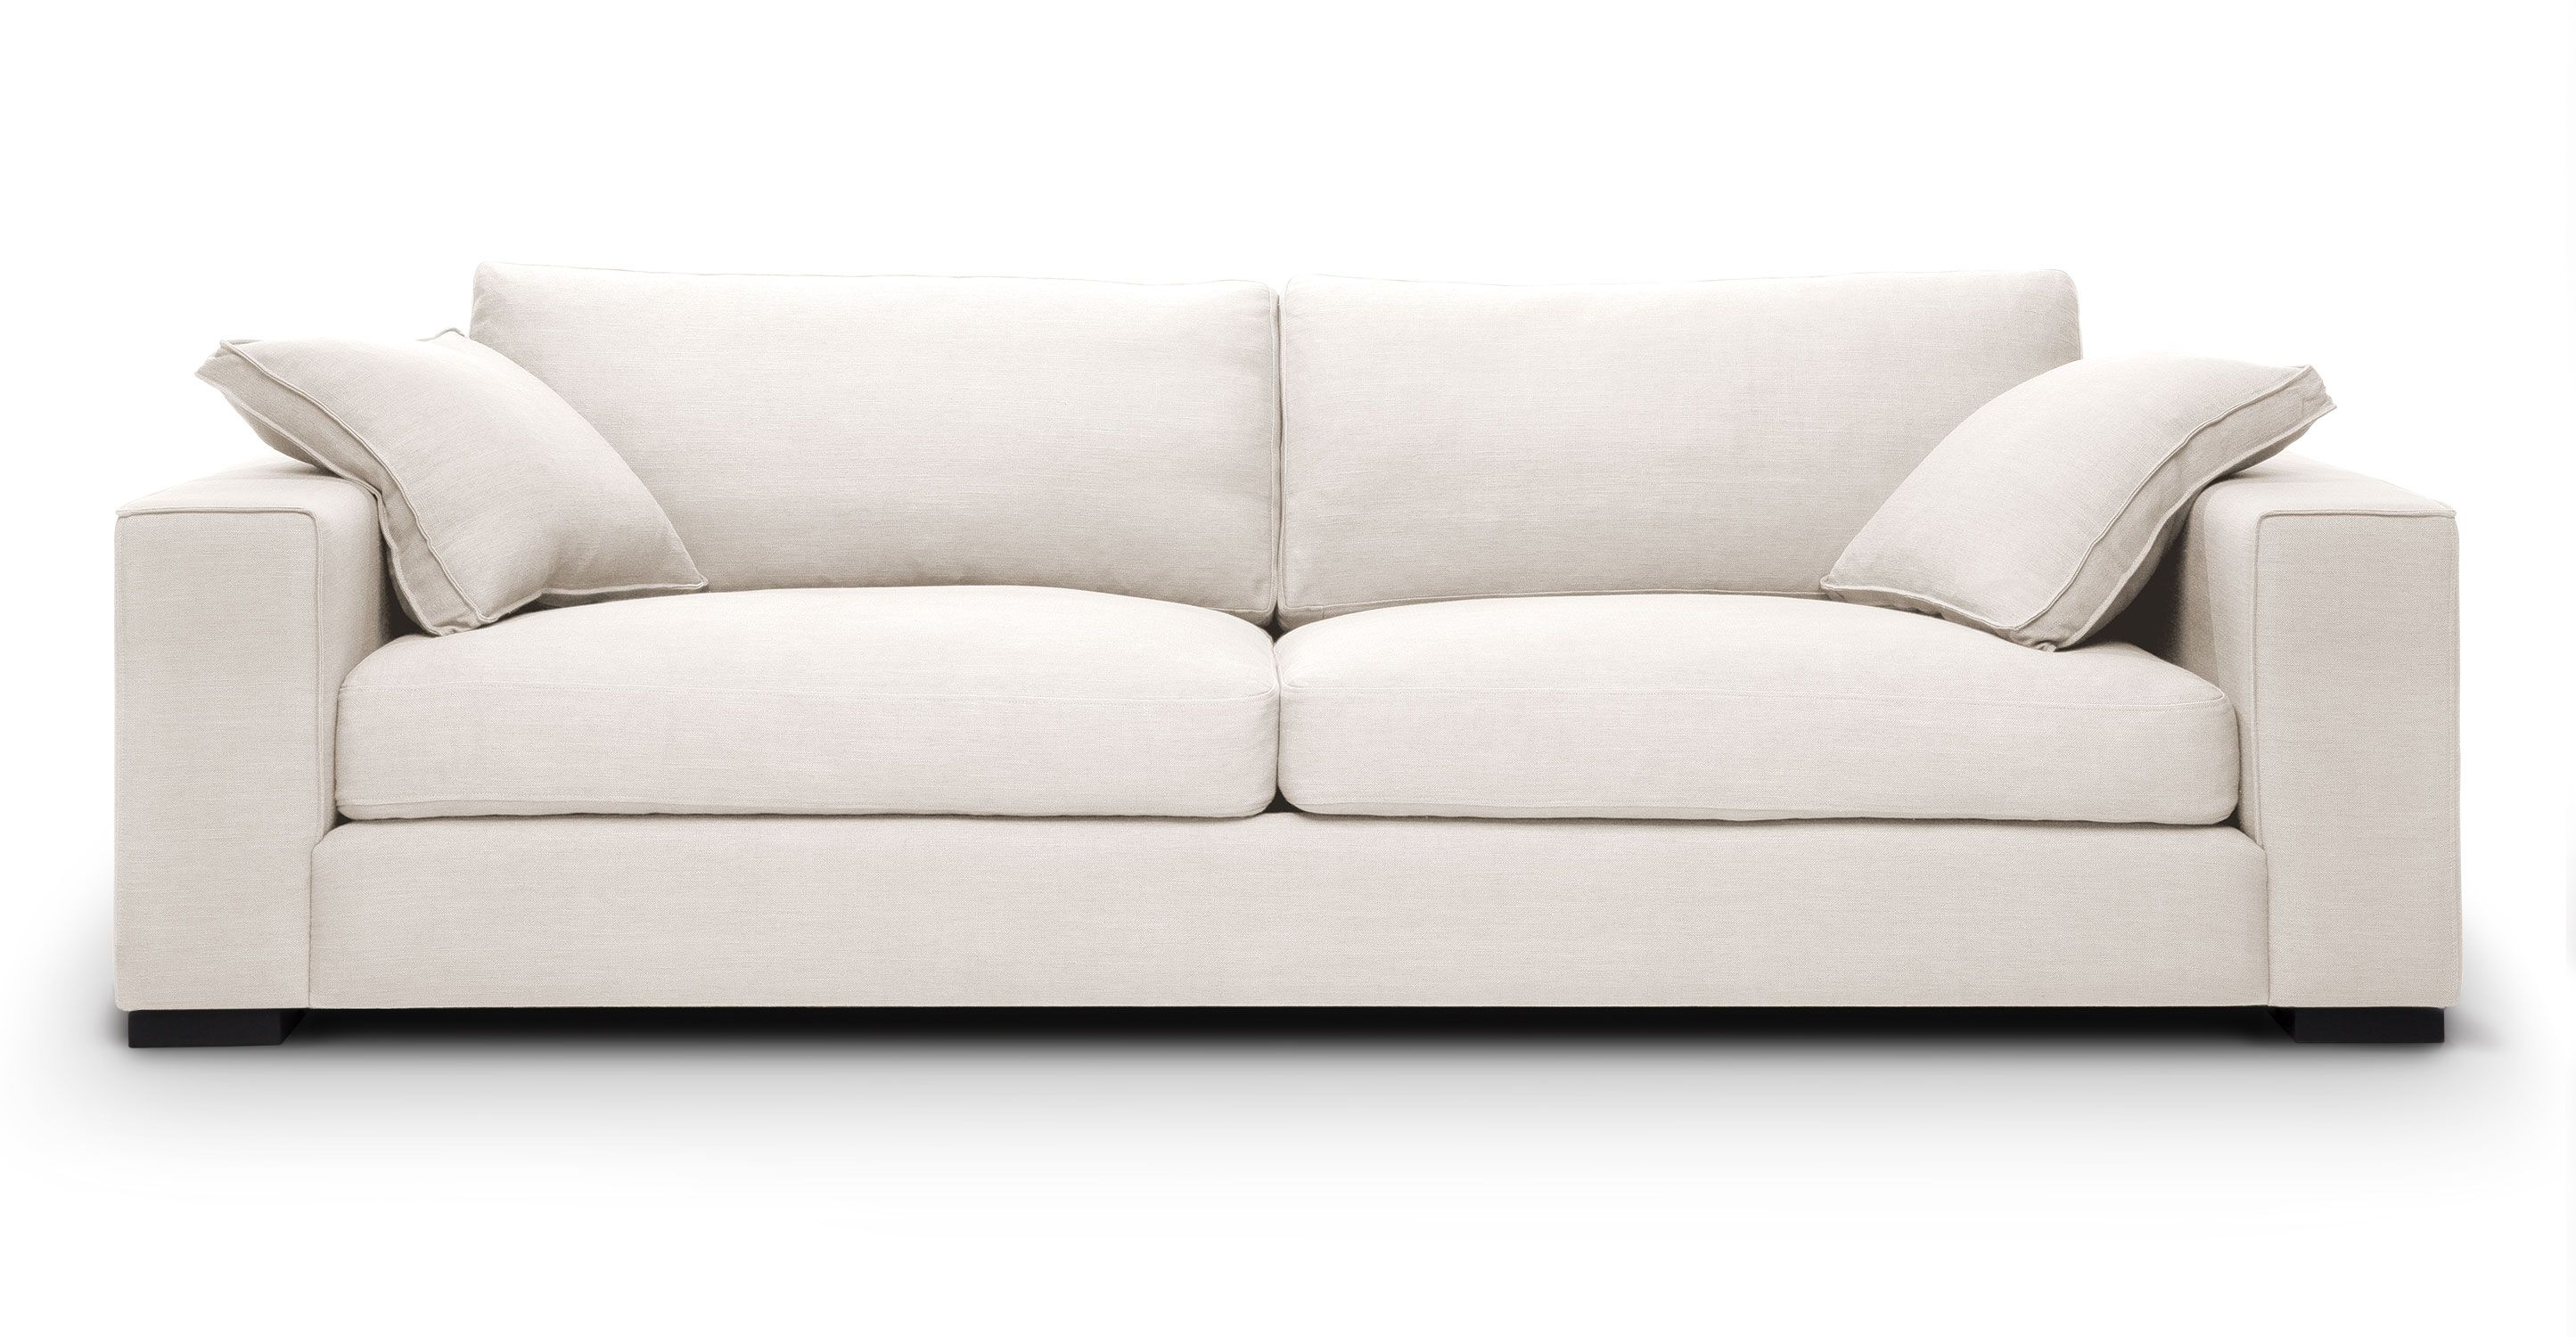 White Sofa With Solid Wood Legs | Article Stika Modern Furniture